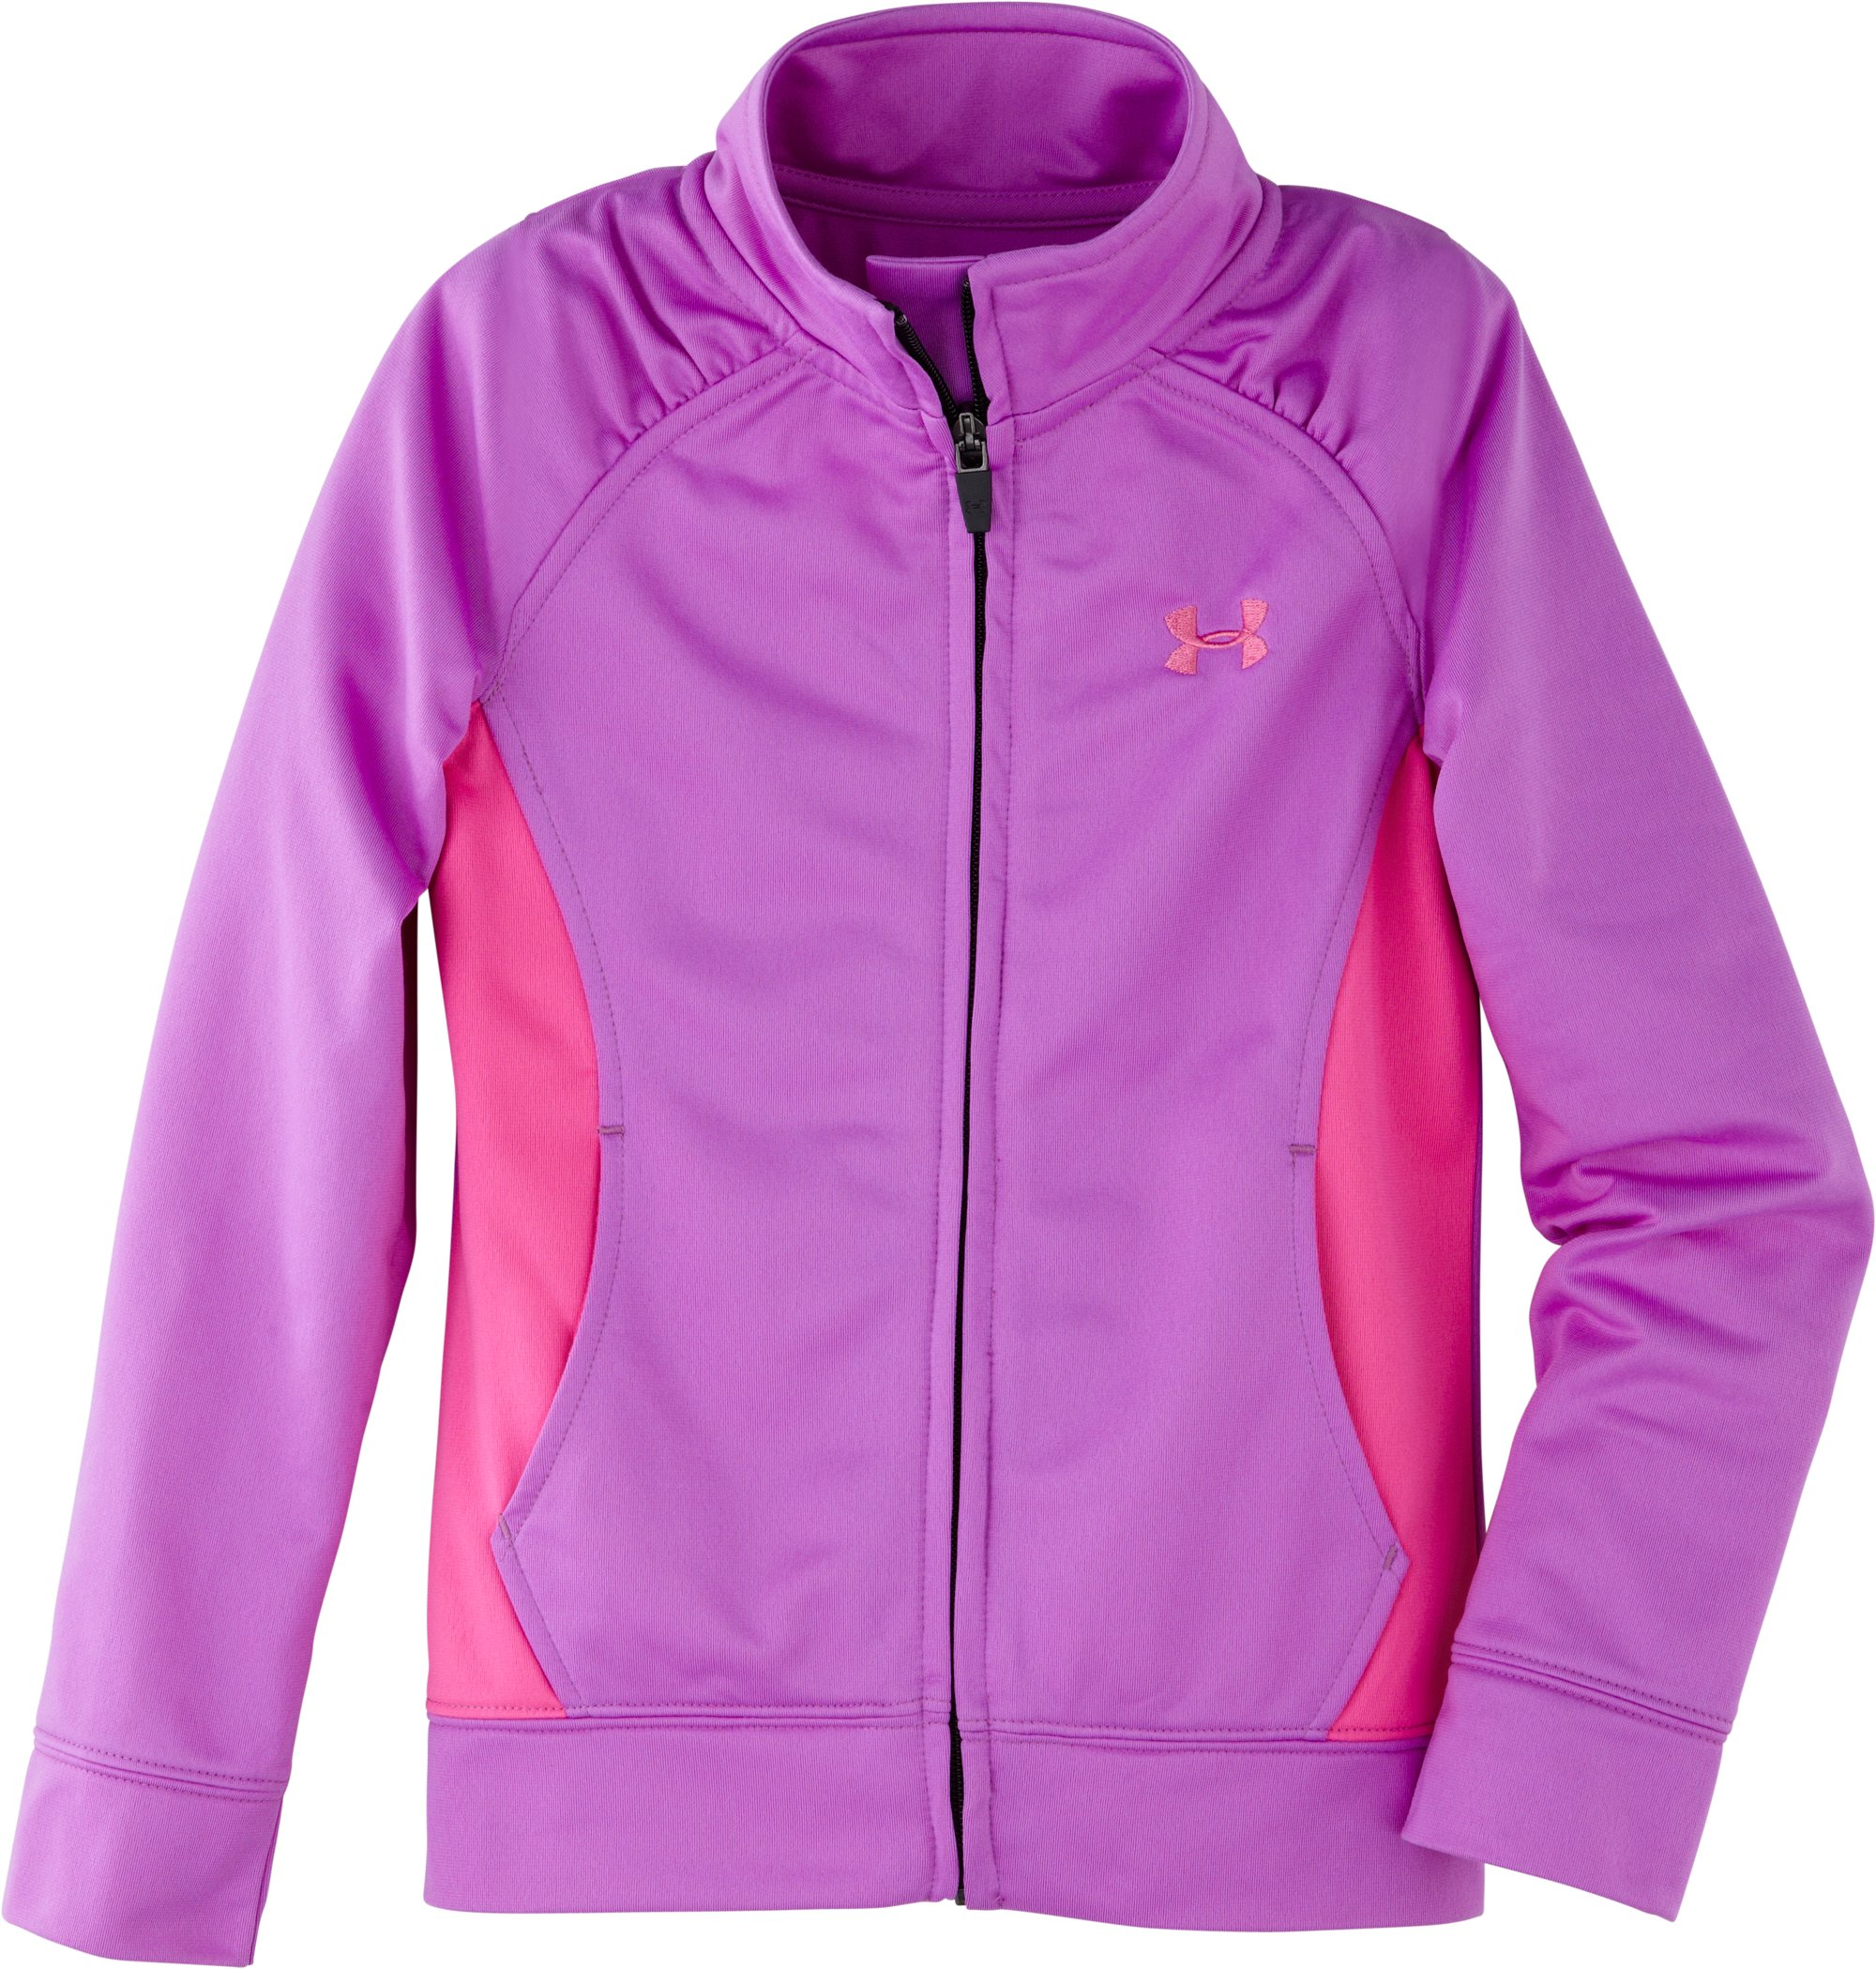 Girls' Pre-School UA Track Jacket, EXOTIC BLOOM